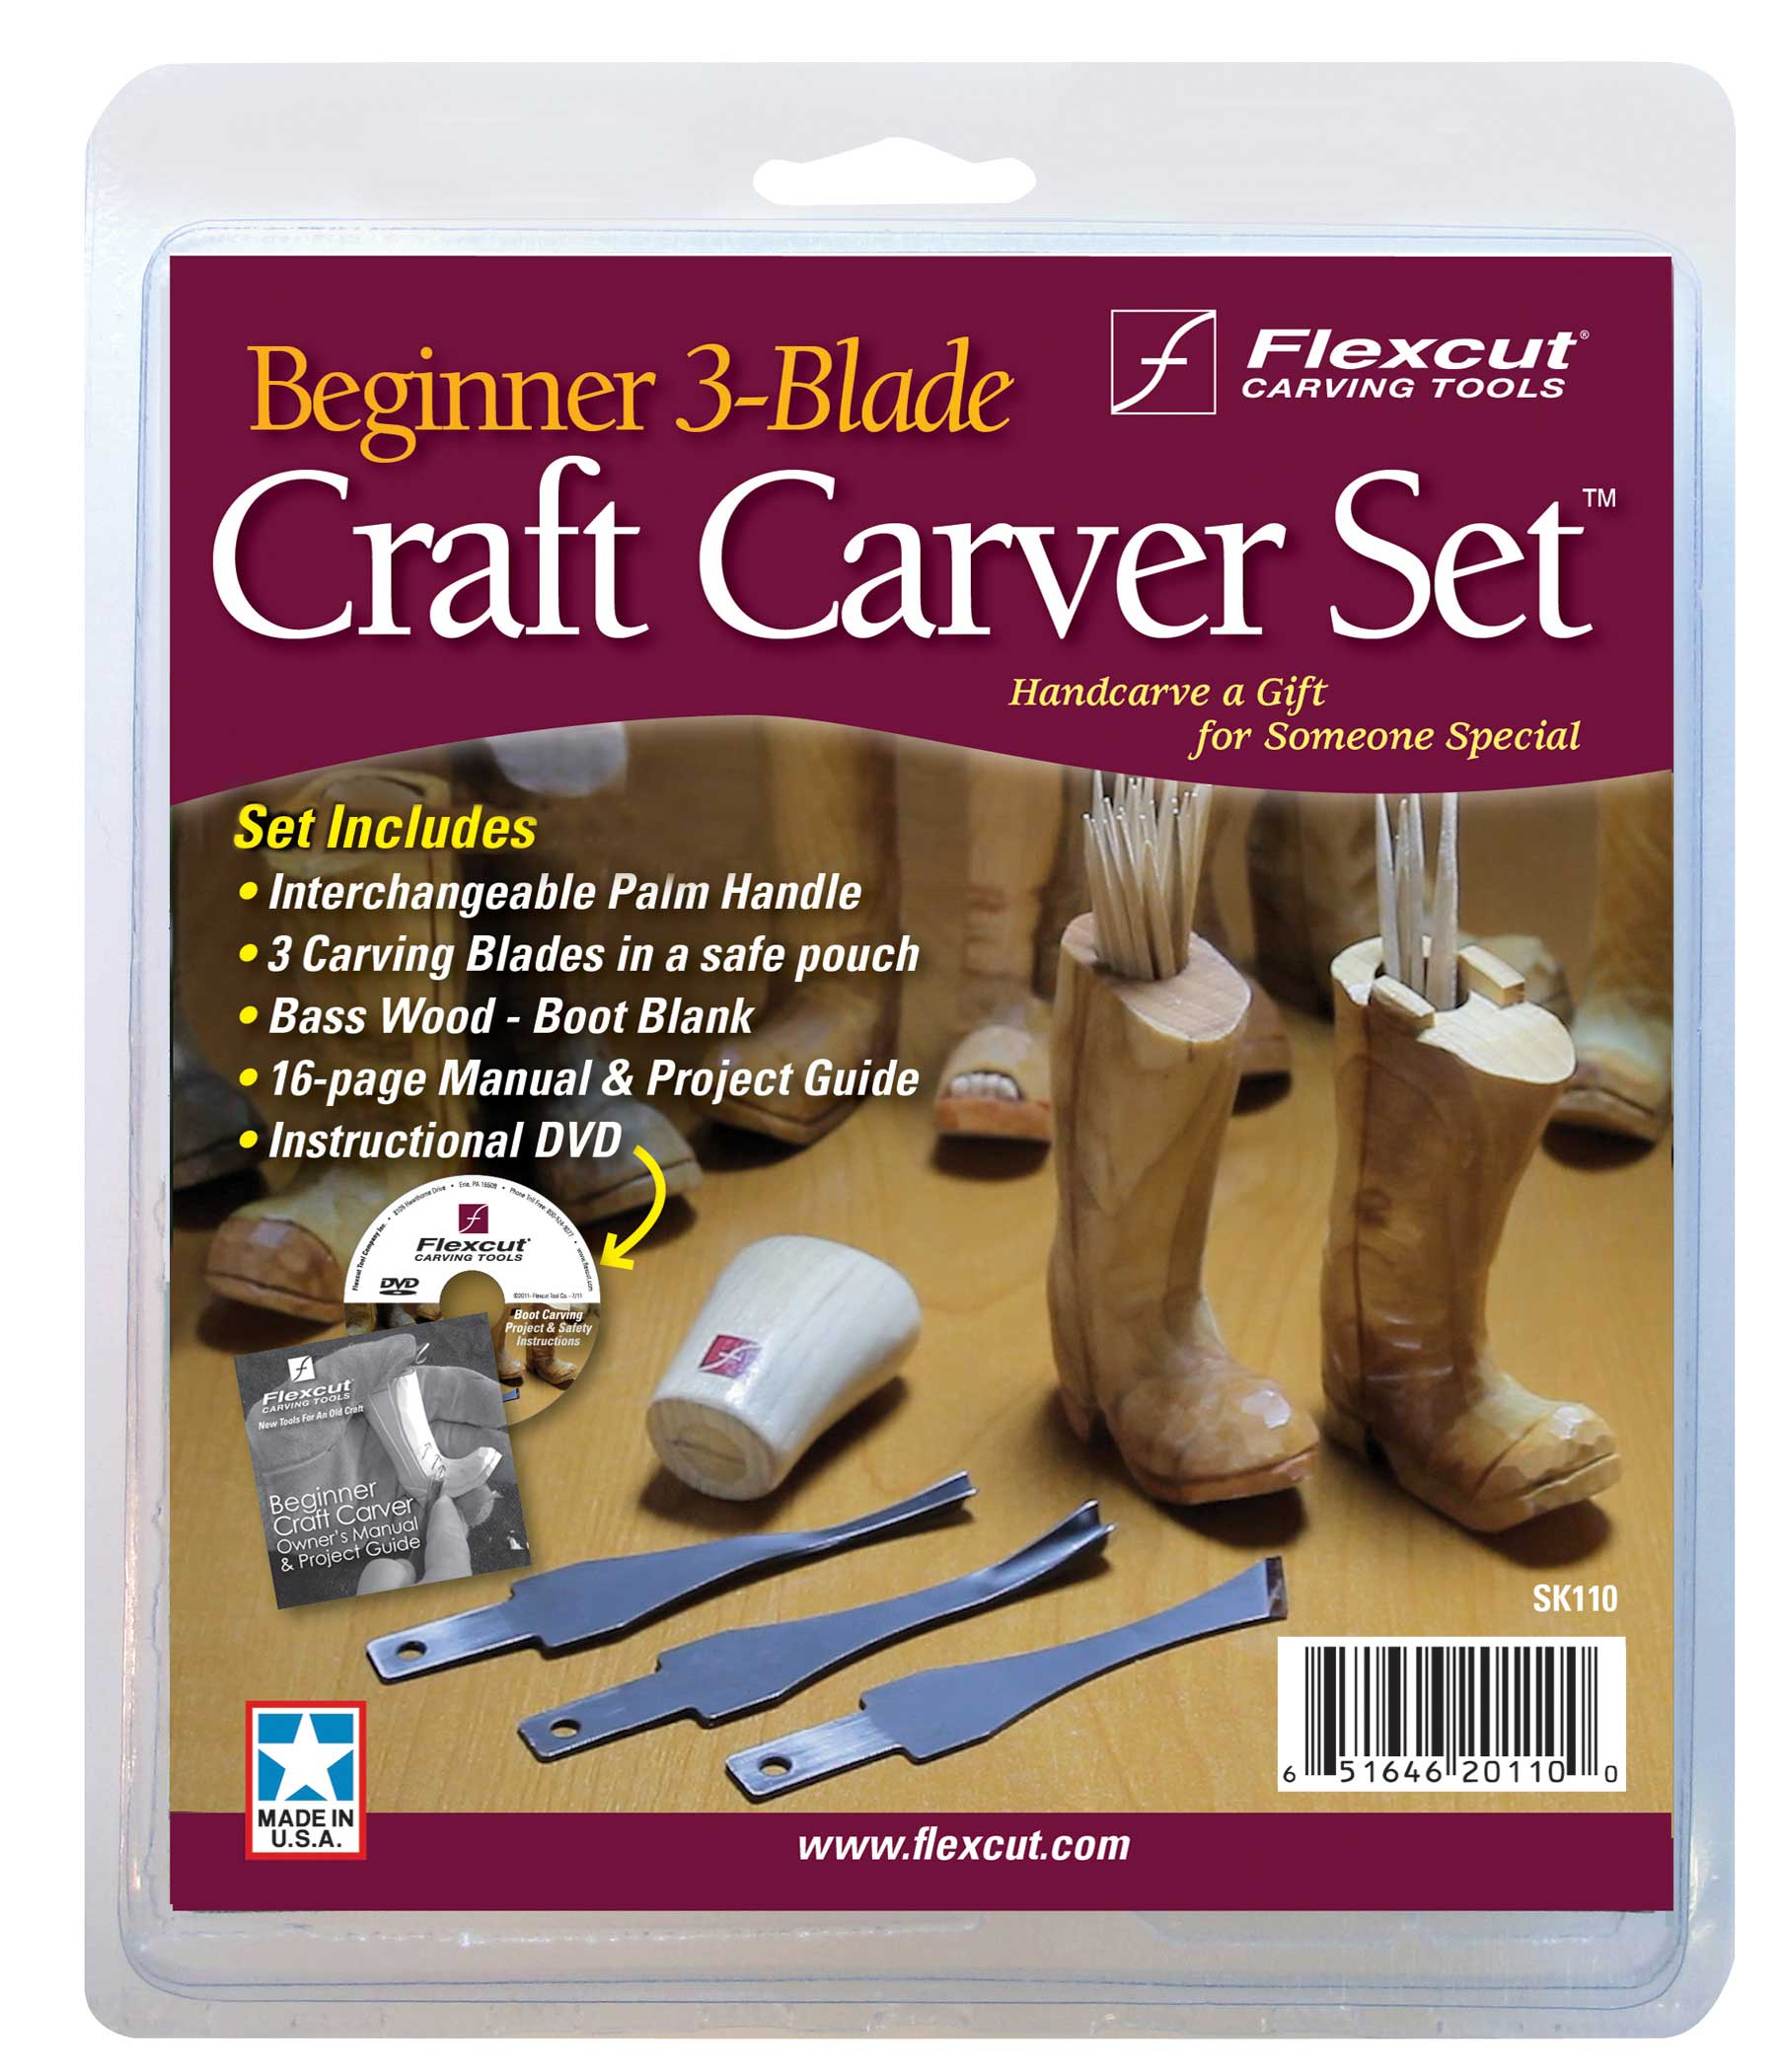 Flexcut Beginner 3-Blade Craft Carver Set